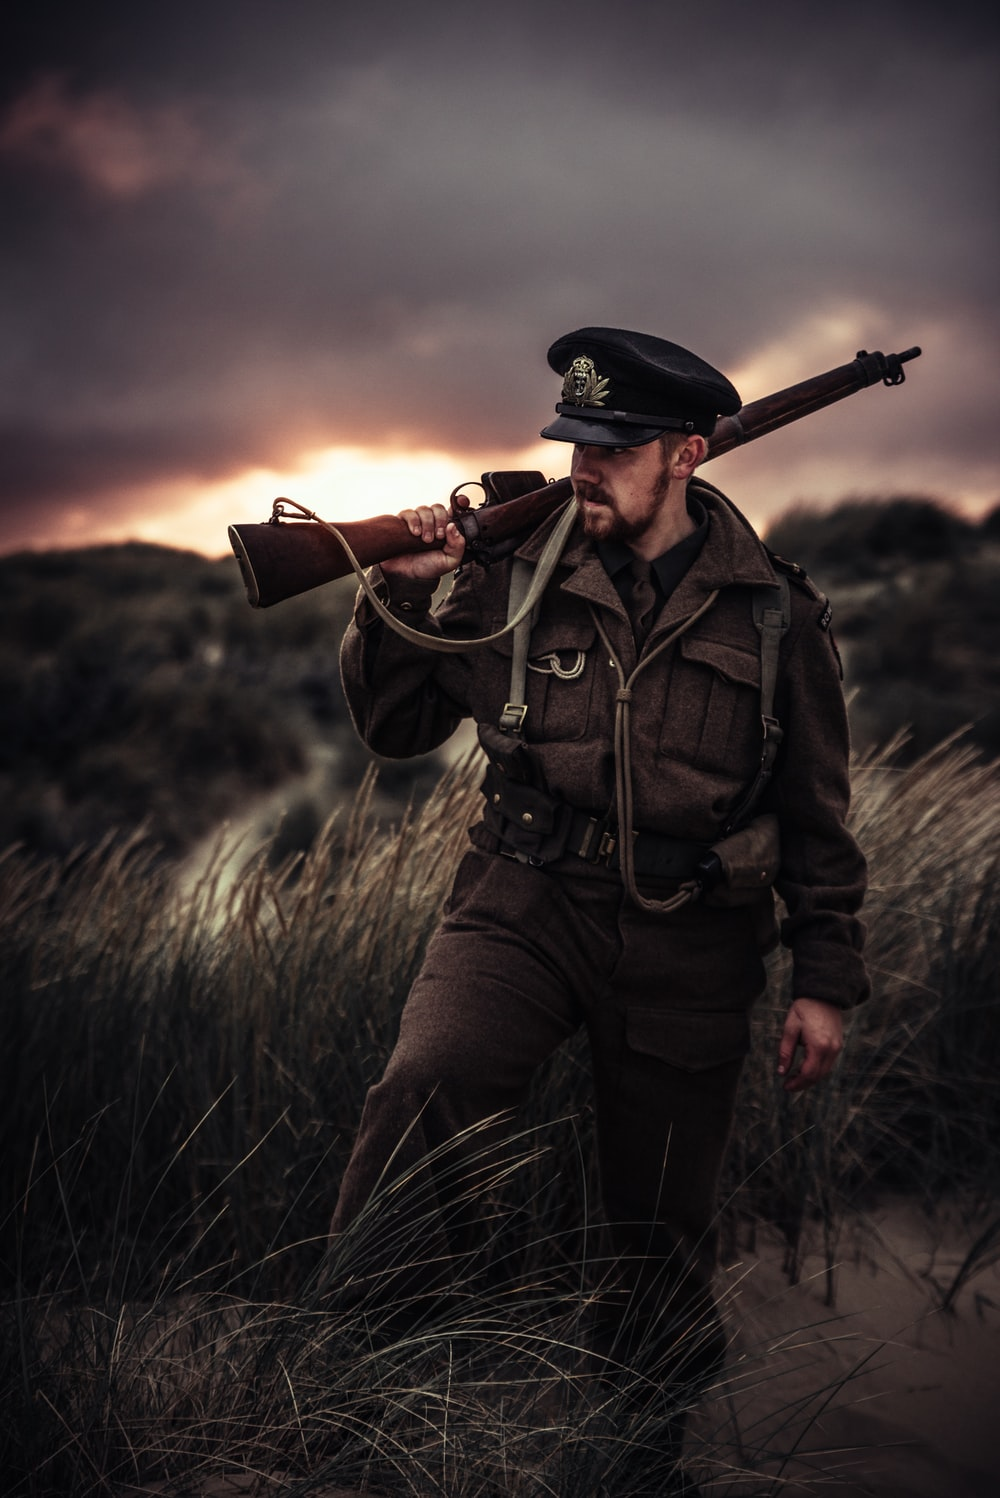 man carrying rifle outdoors